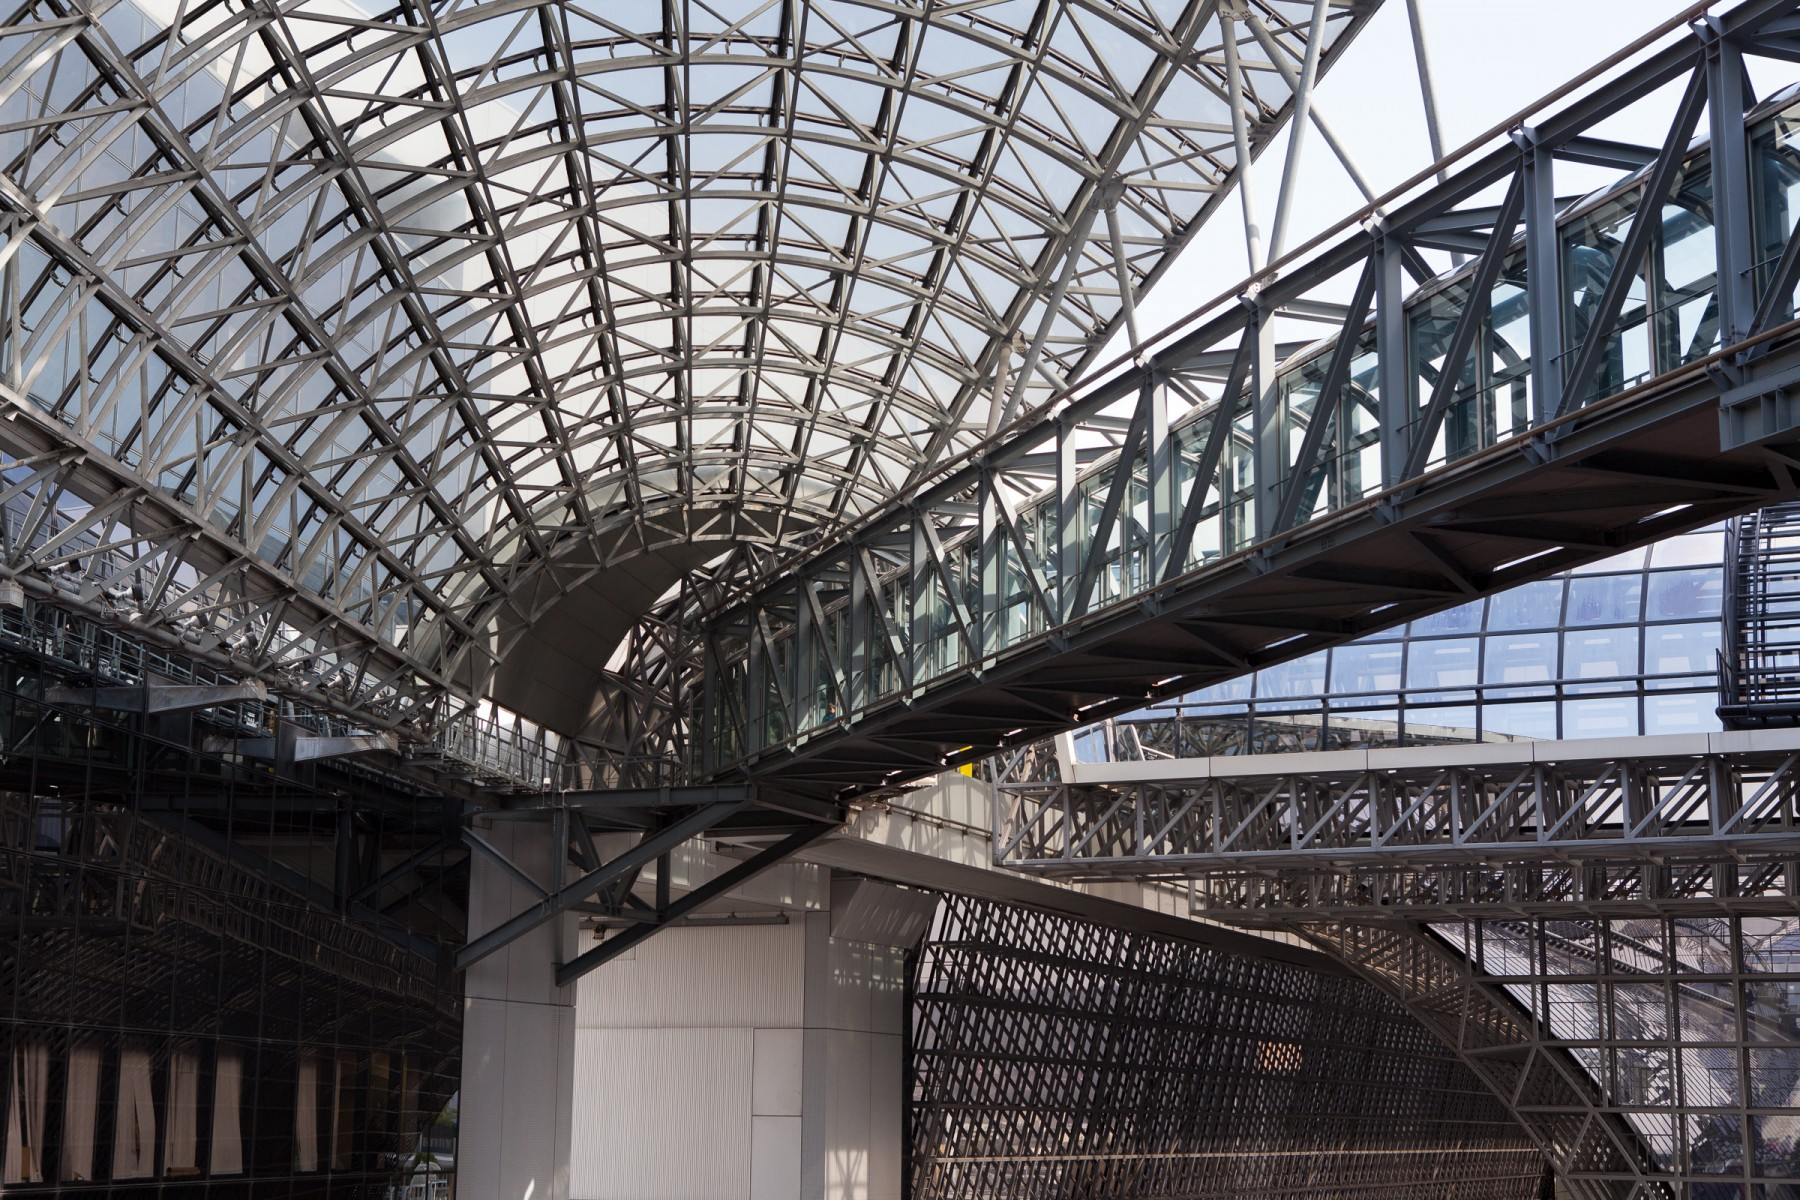 Kyoto station roof and skywalk